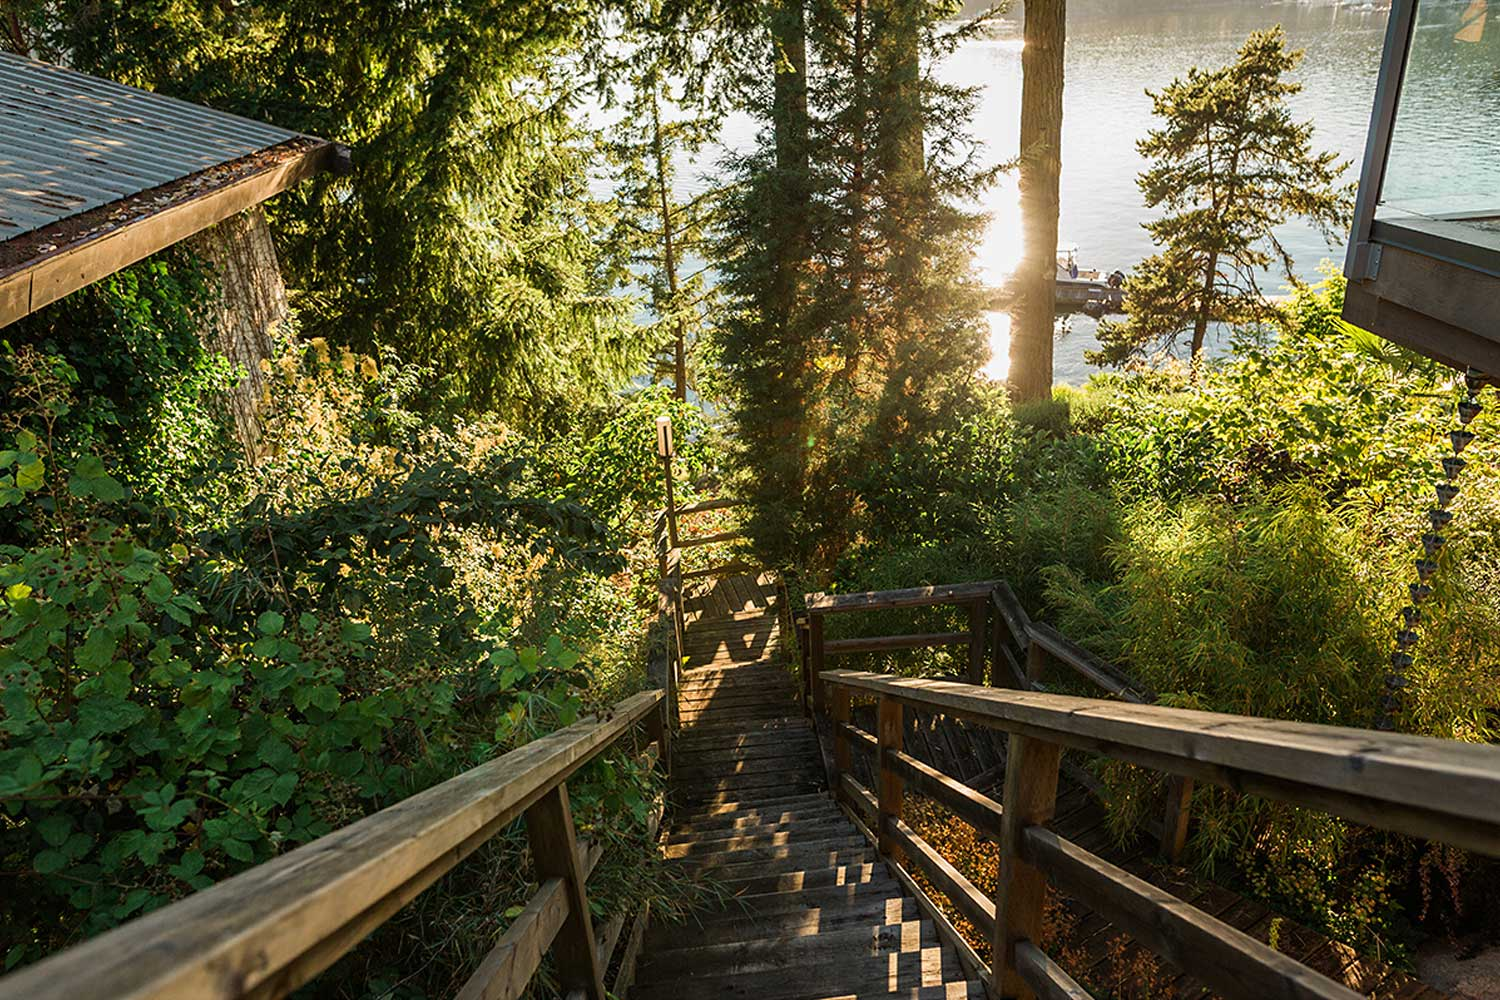 Wooden stairs from the house down through the garden to the shoreline at this luxurious Pender Harbour rental house.